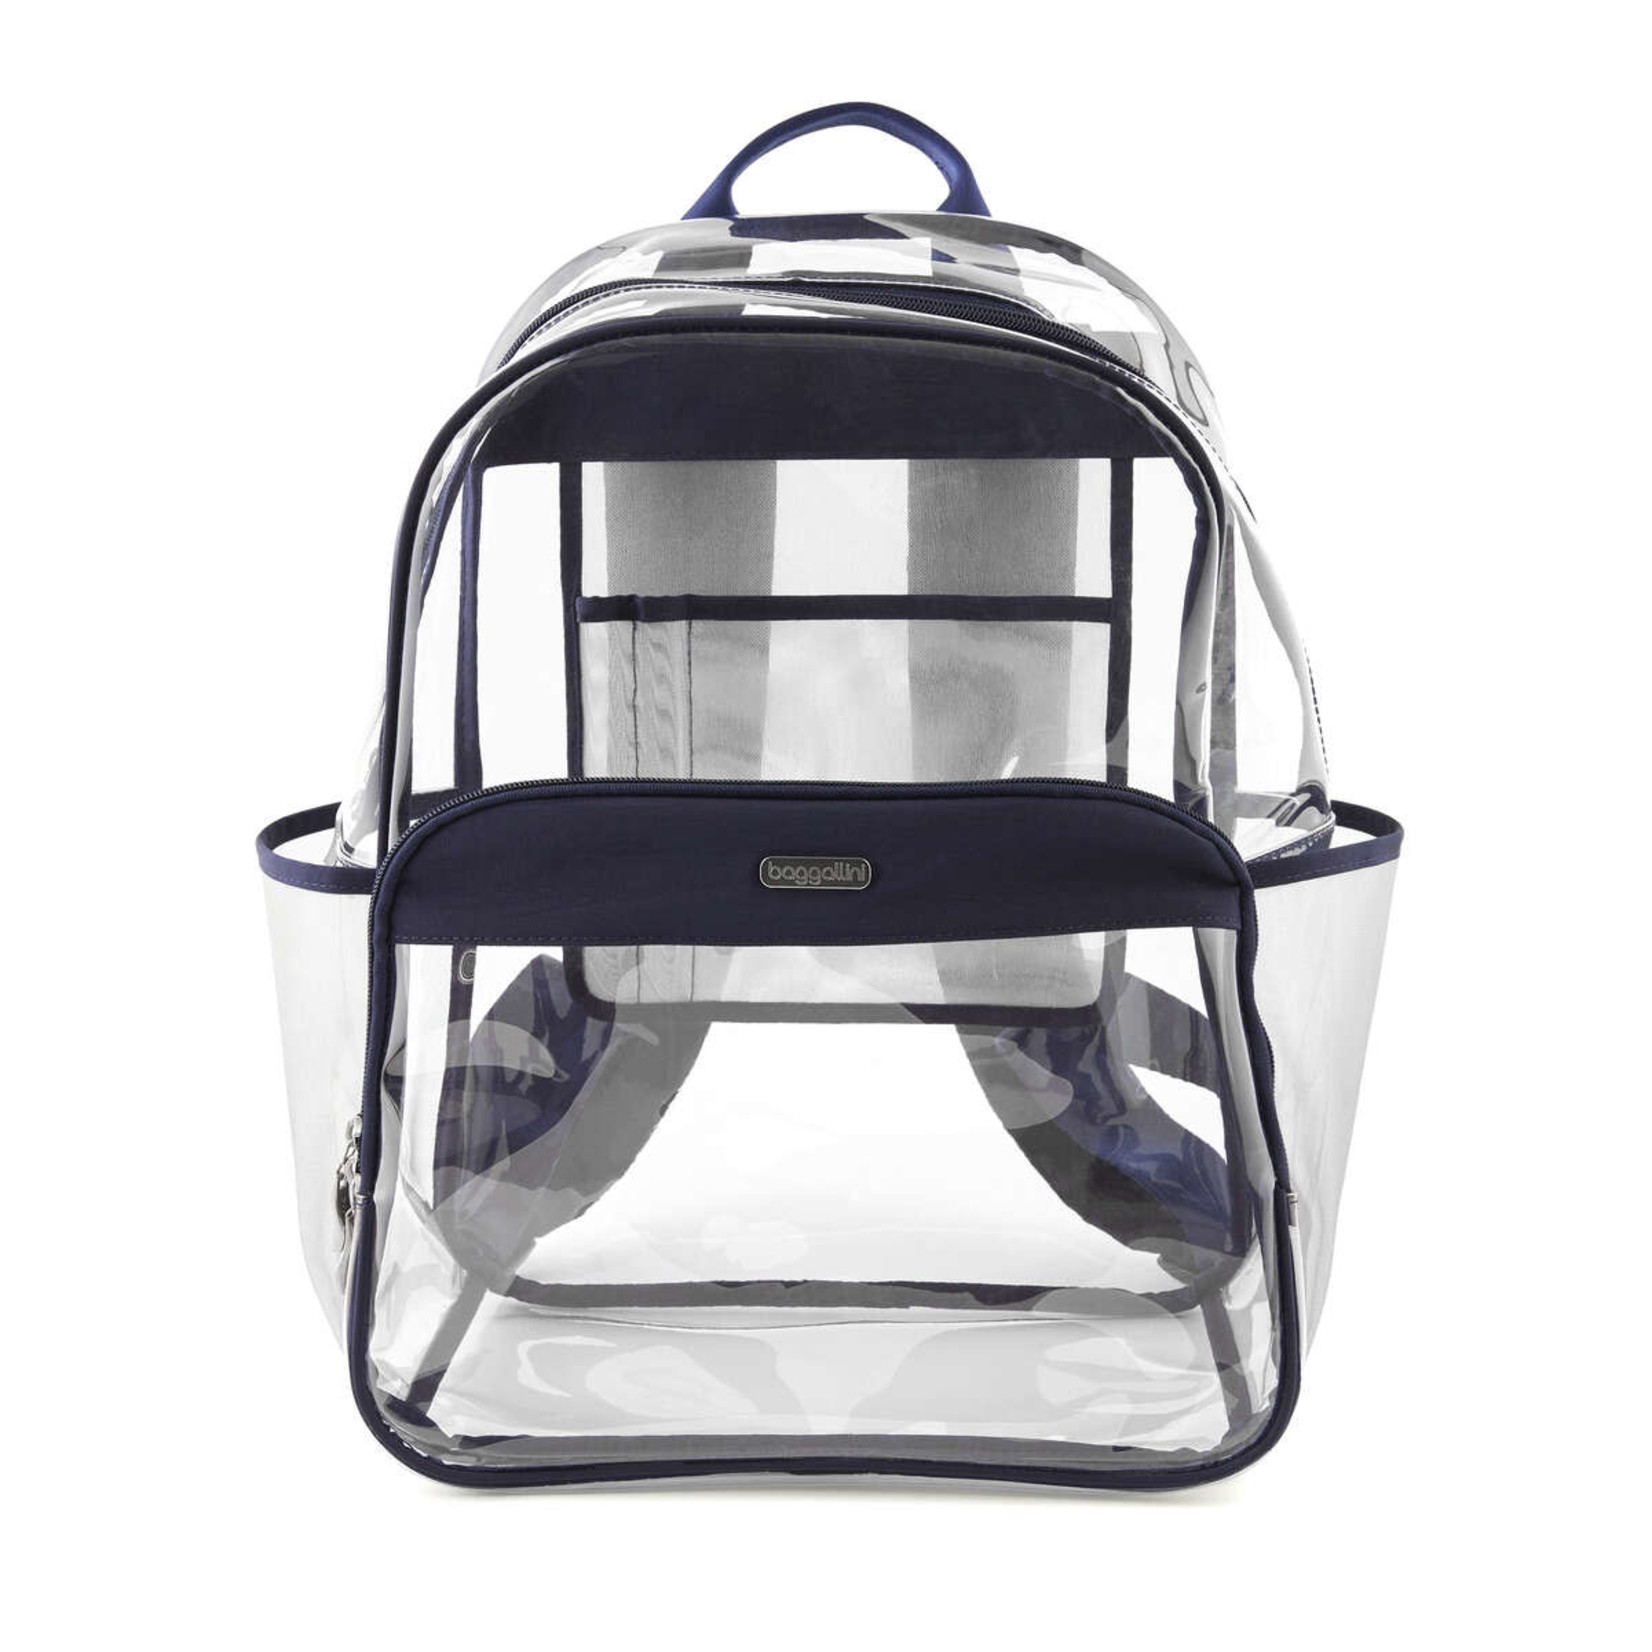 Baggallini Clear Event Compliant Large Backpack